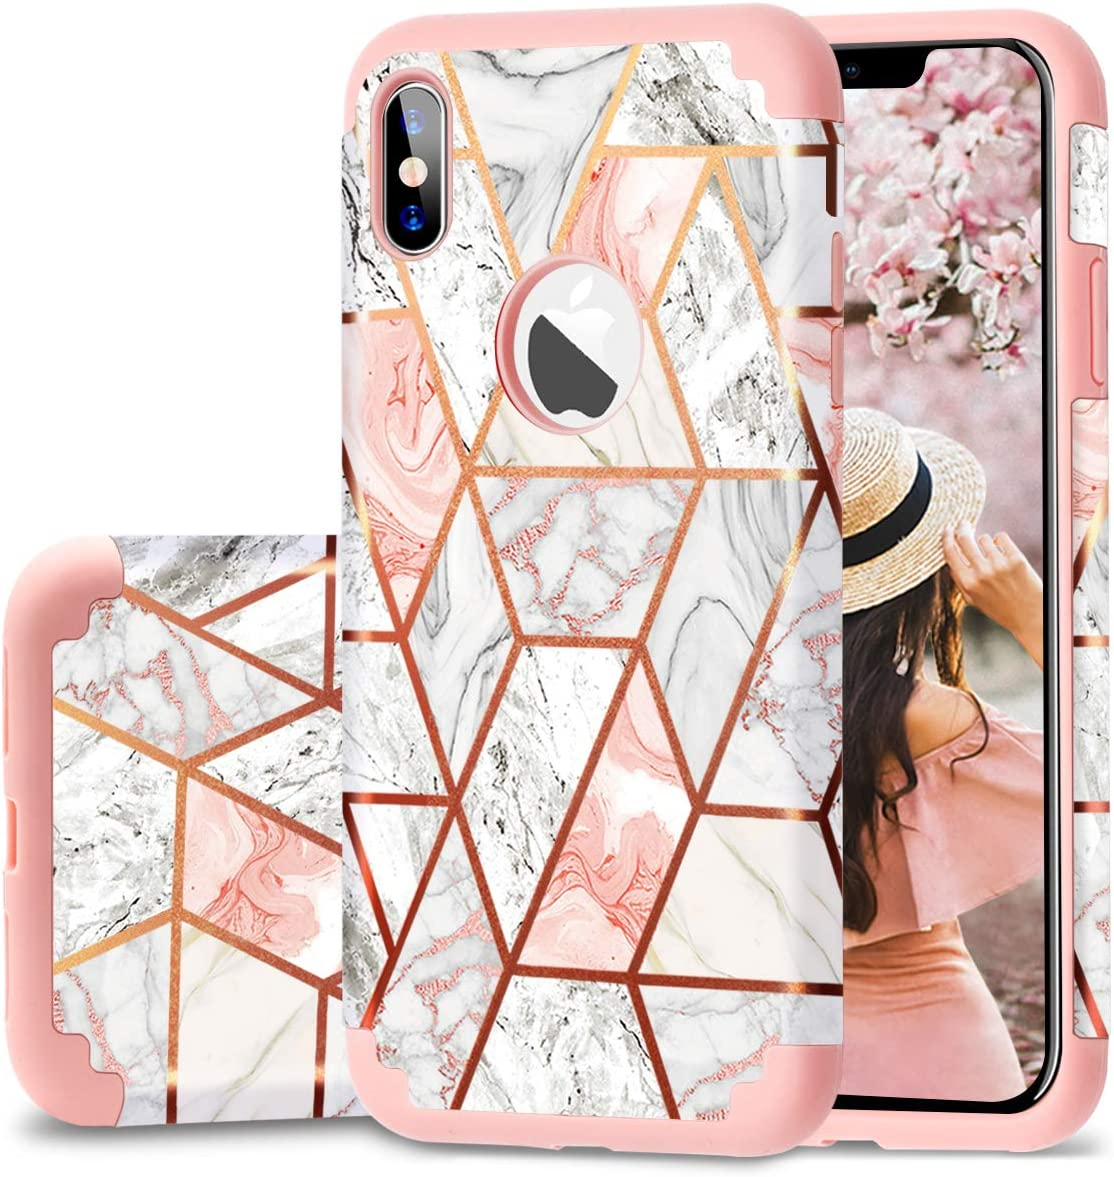 Fingic iPhone Xs Max Case, Rose Gold Marble Design Shiny Glitter Bumper Hybrid Hard PC Soft Rubber Anti-Scratch Shockproof Protective Case Cover for Apple iPhone Xs Max 6.5 inch 2018, Rose Gold